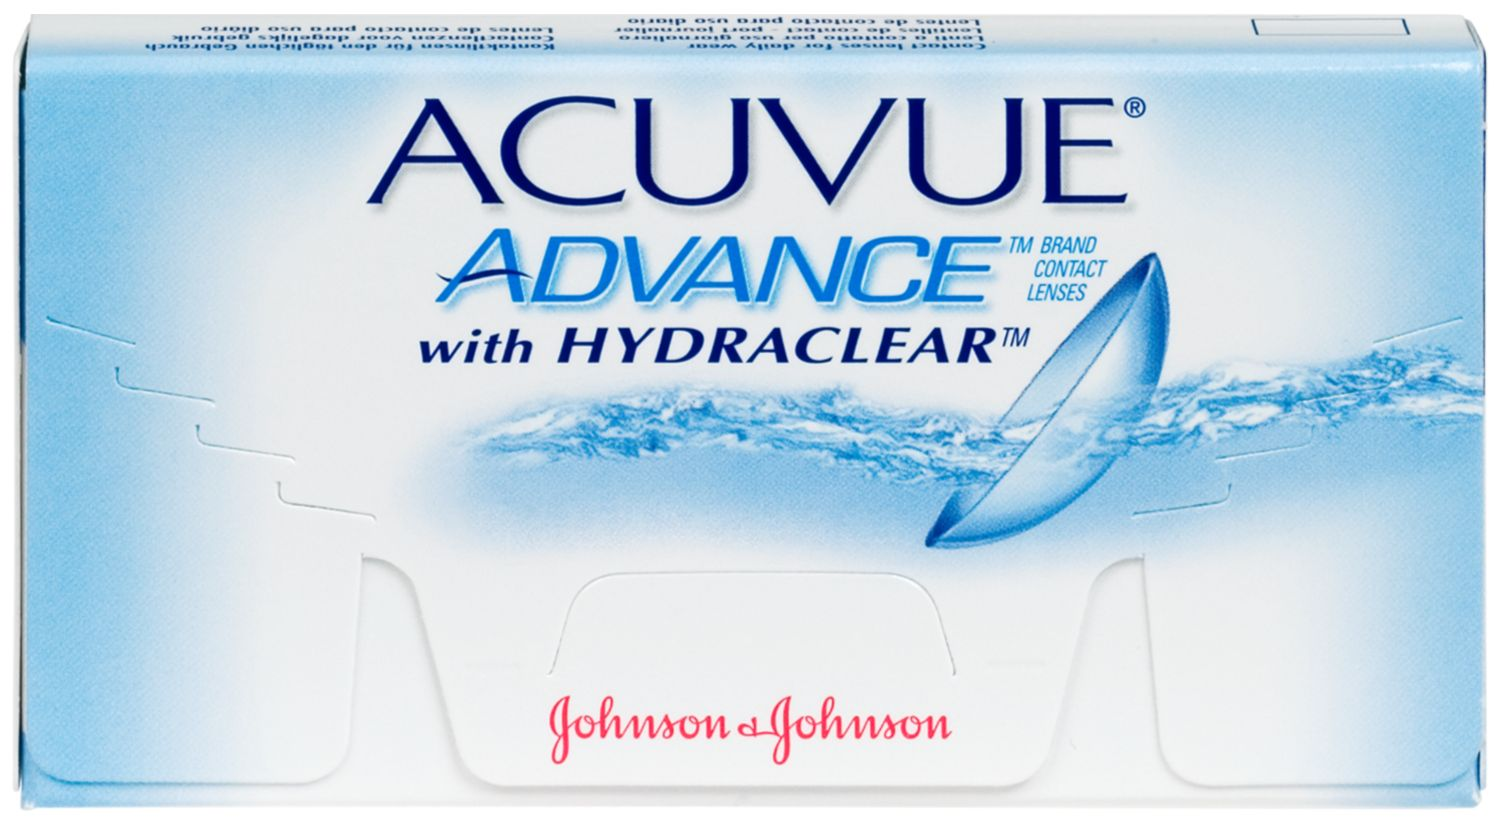 ACUVUE® ADVANCE®